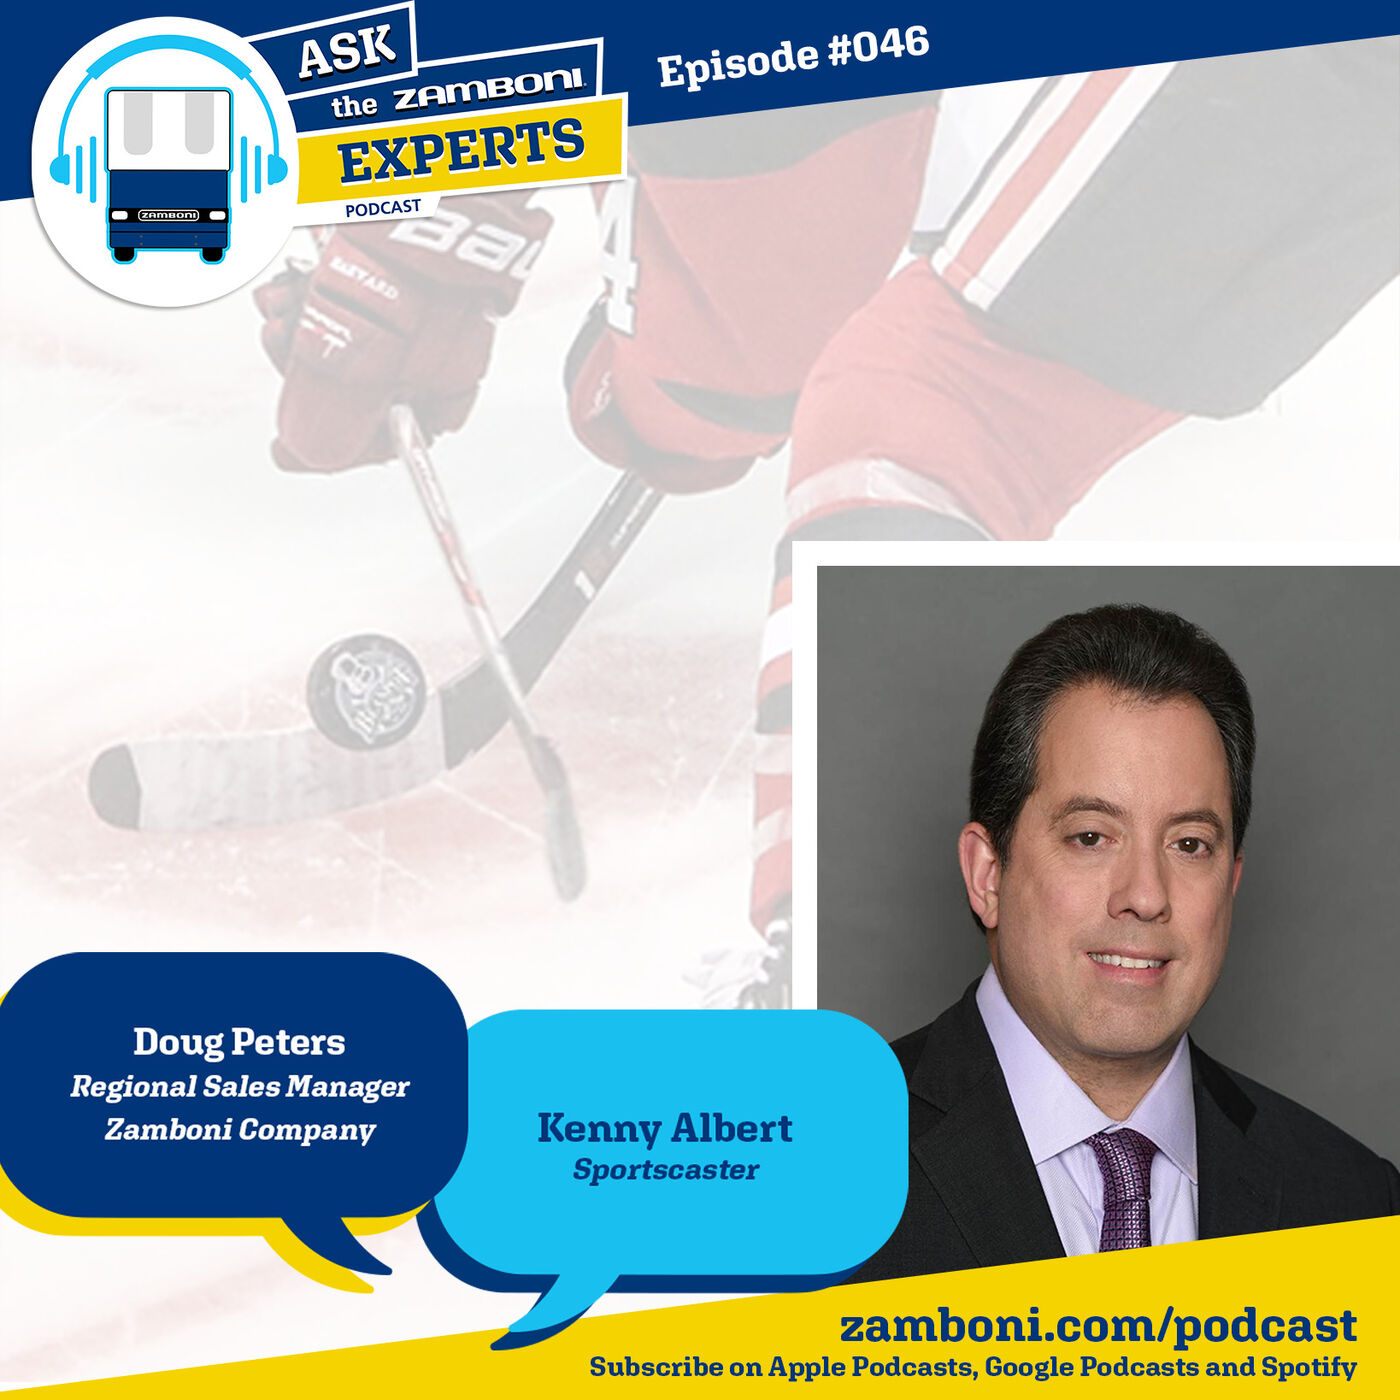 Episode #046: Kenny Albert